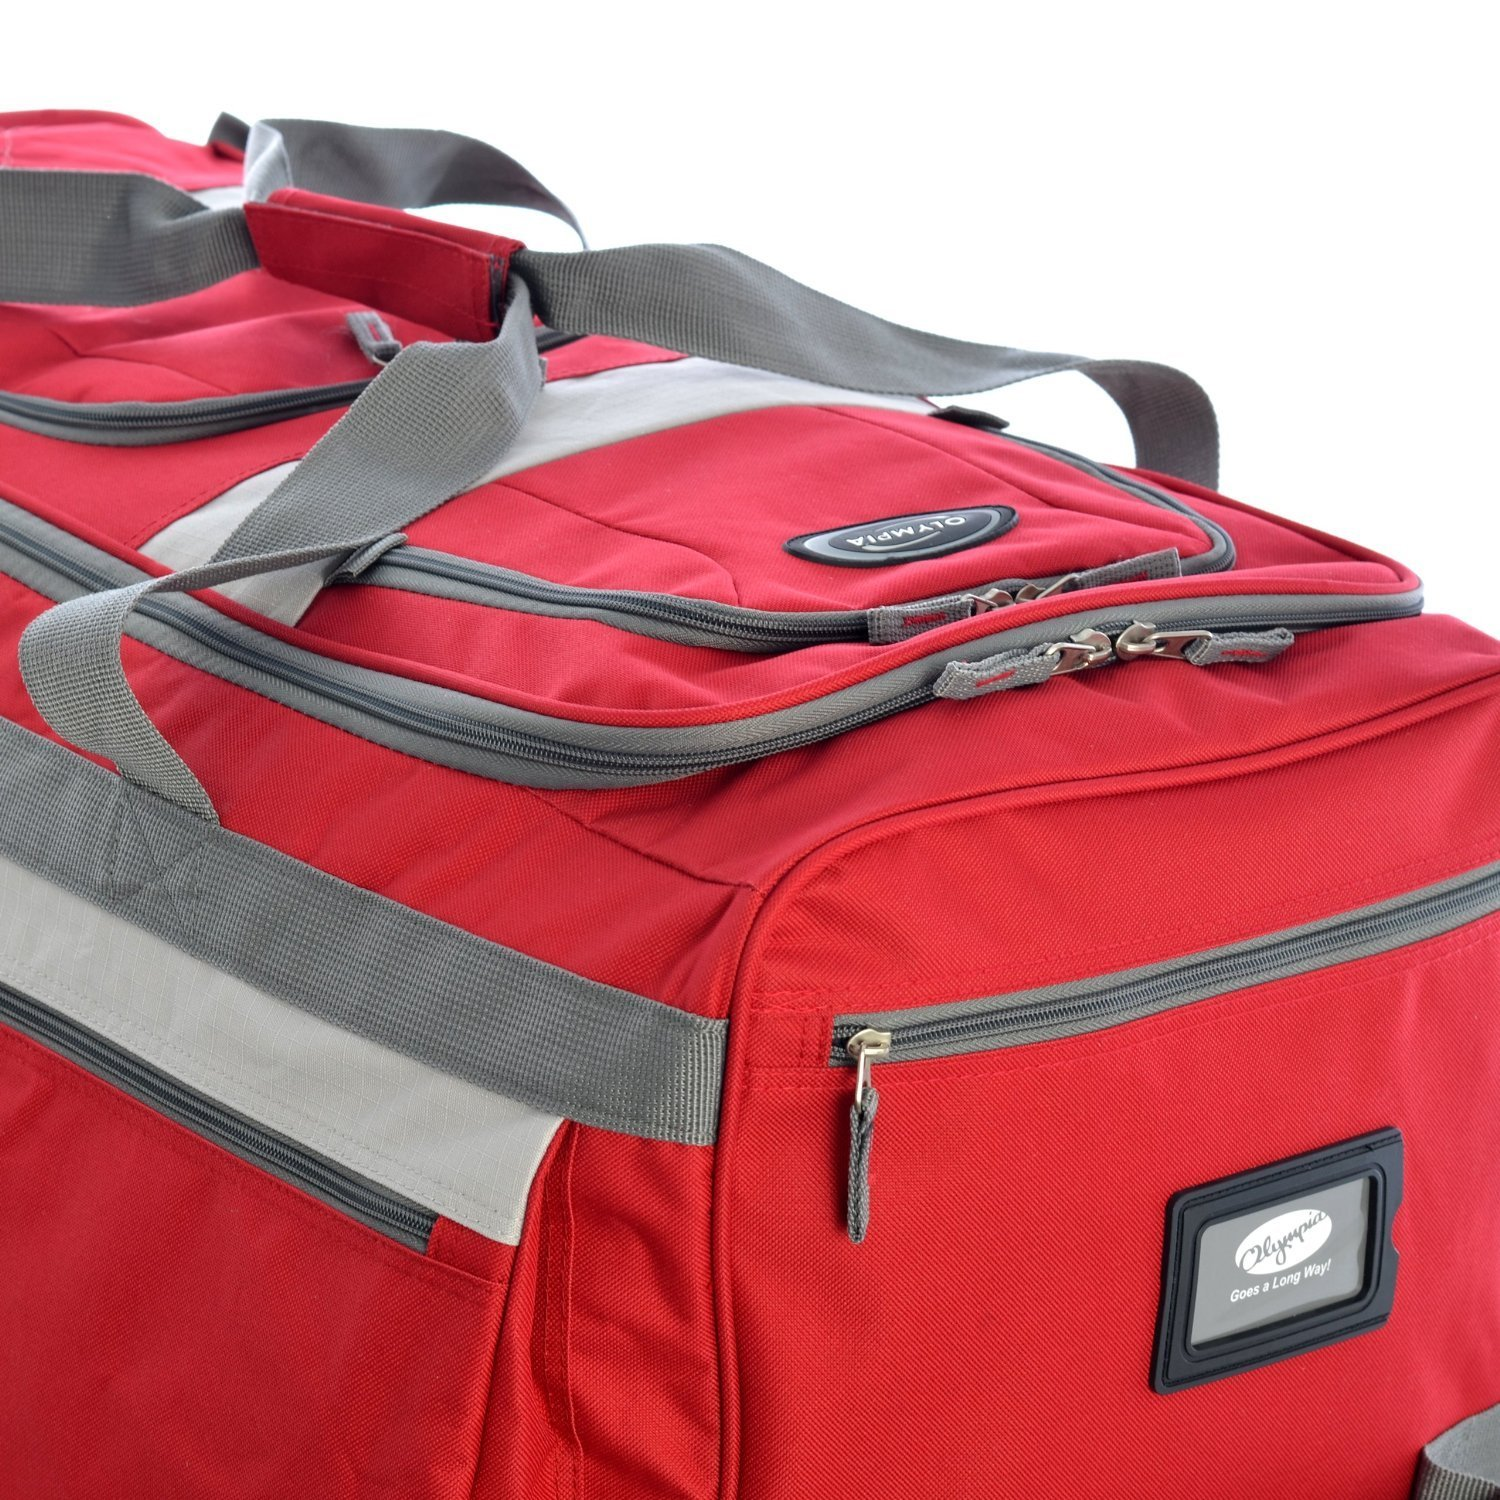 Luggage 22 8 Pocket Rolling Duffel Bag, Red/Grey, One Size